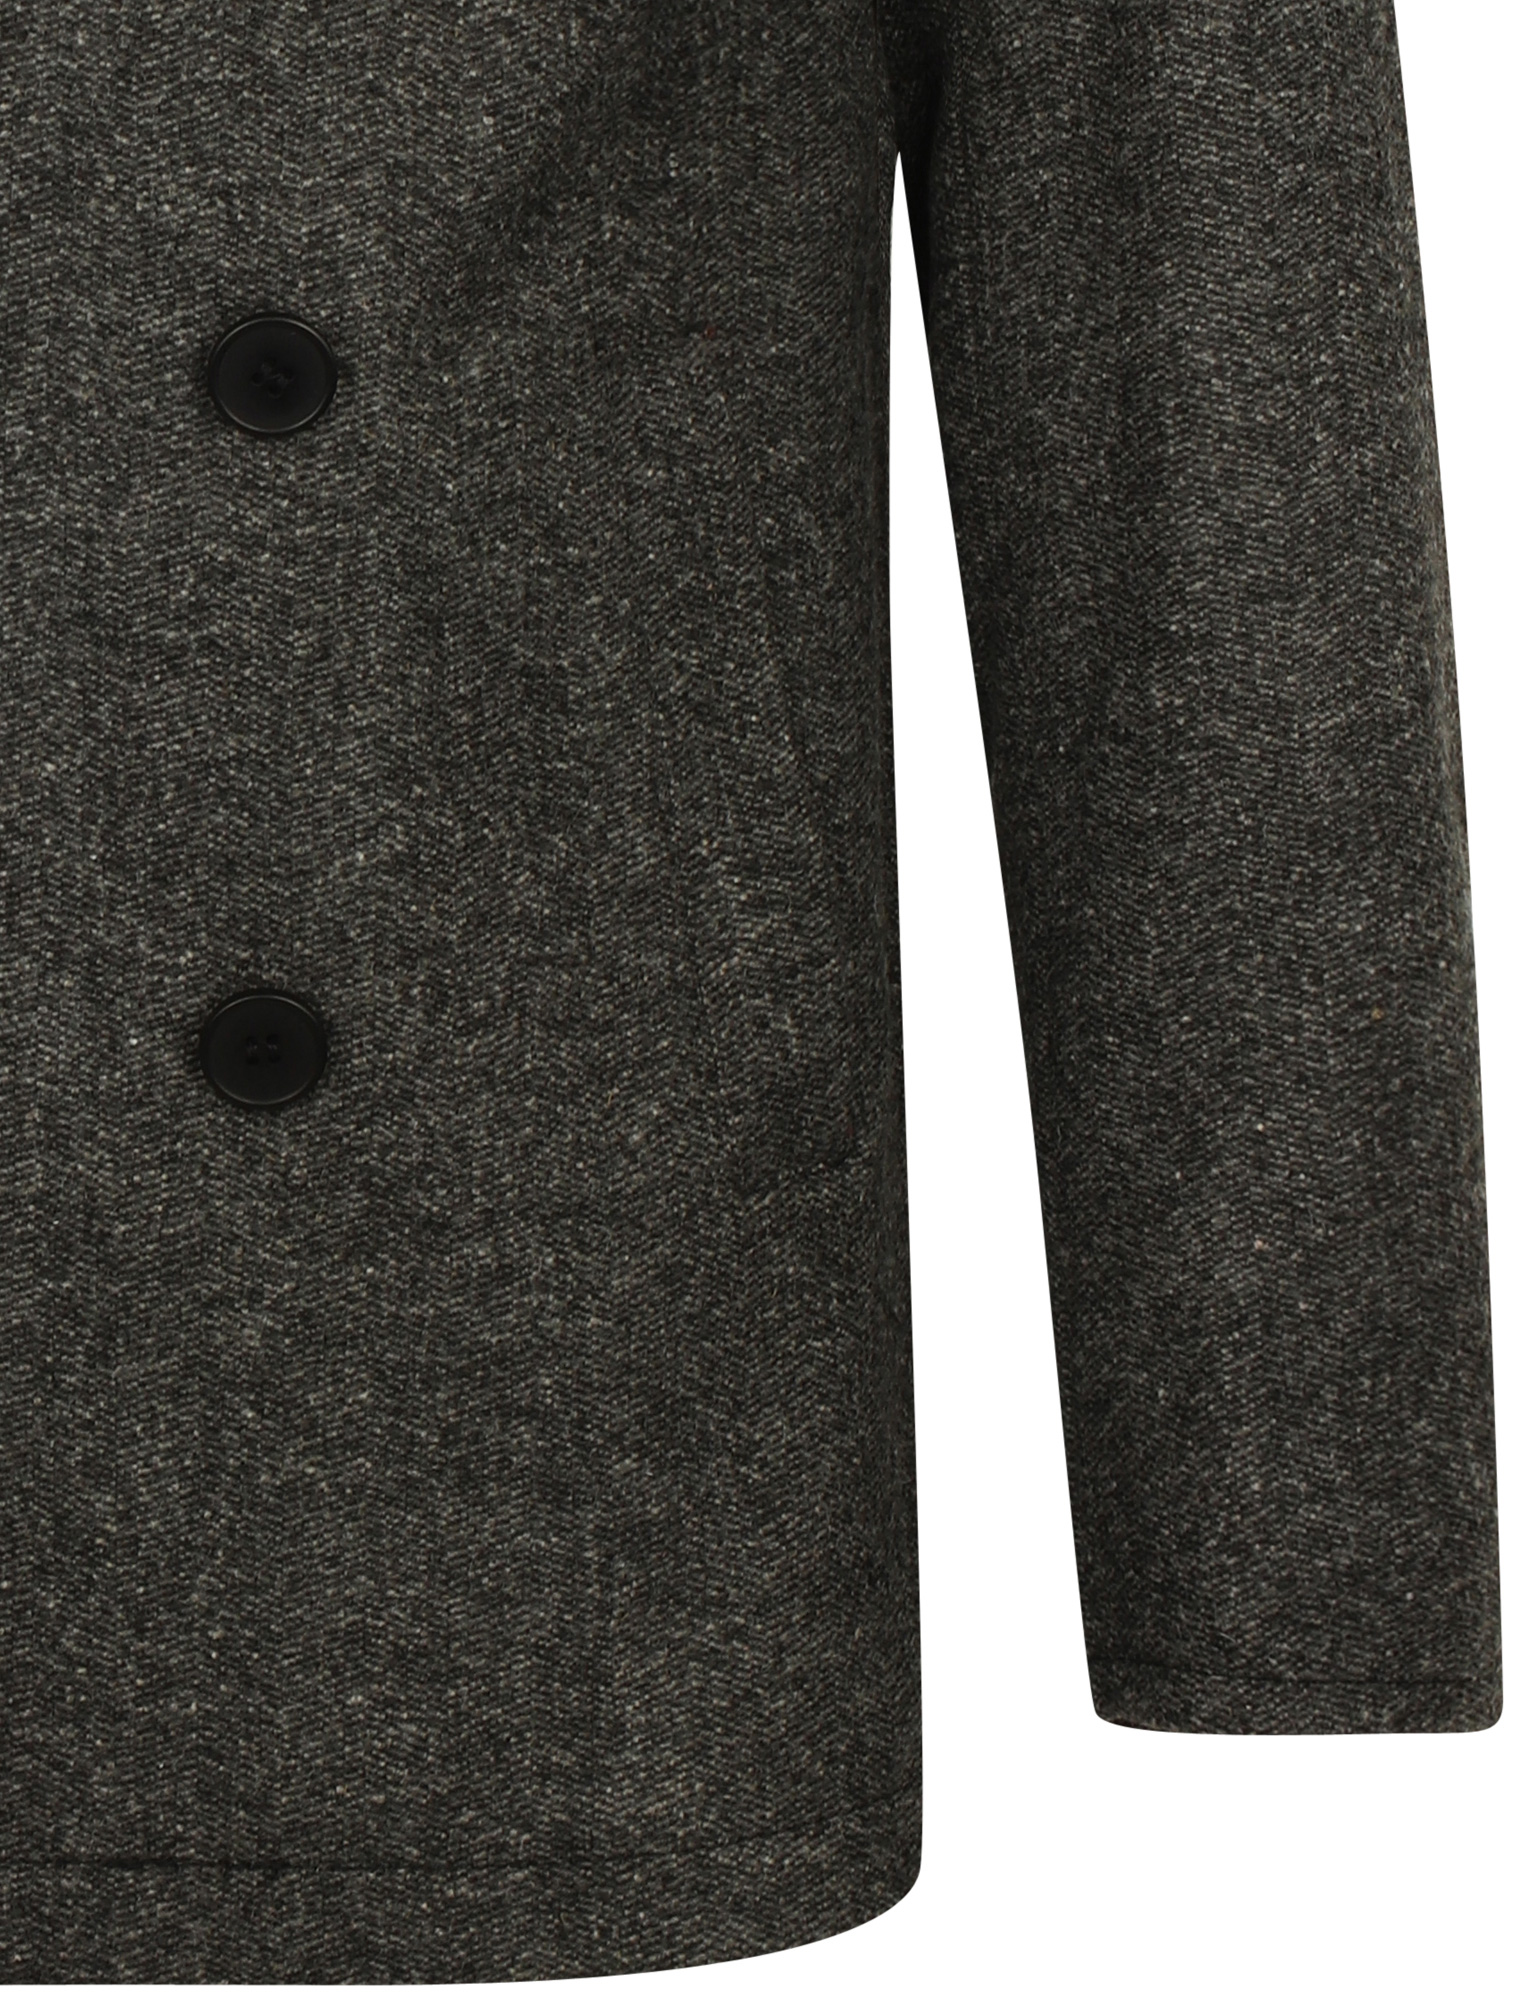 New-Mens-Tokyo-Laundry-Branded-Wool-Blend-Peacoat-Duffle-Coat-Size-S-XXL thumbnail 10